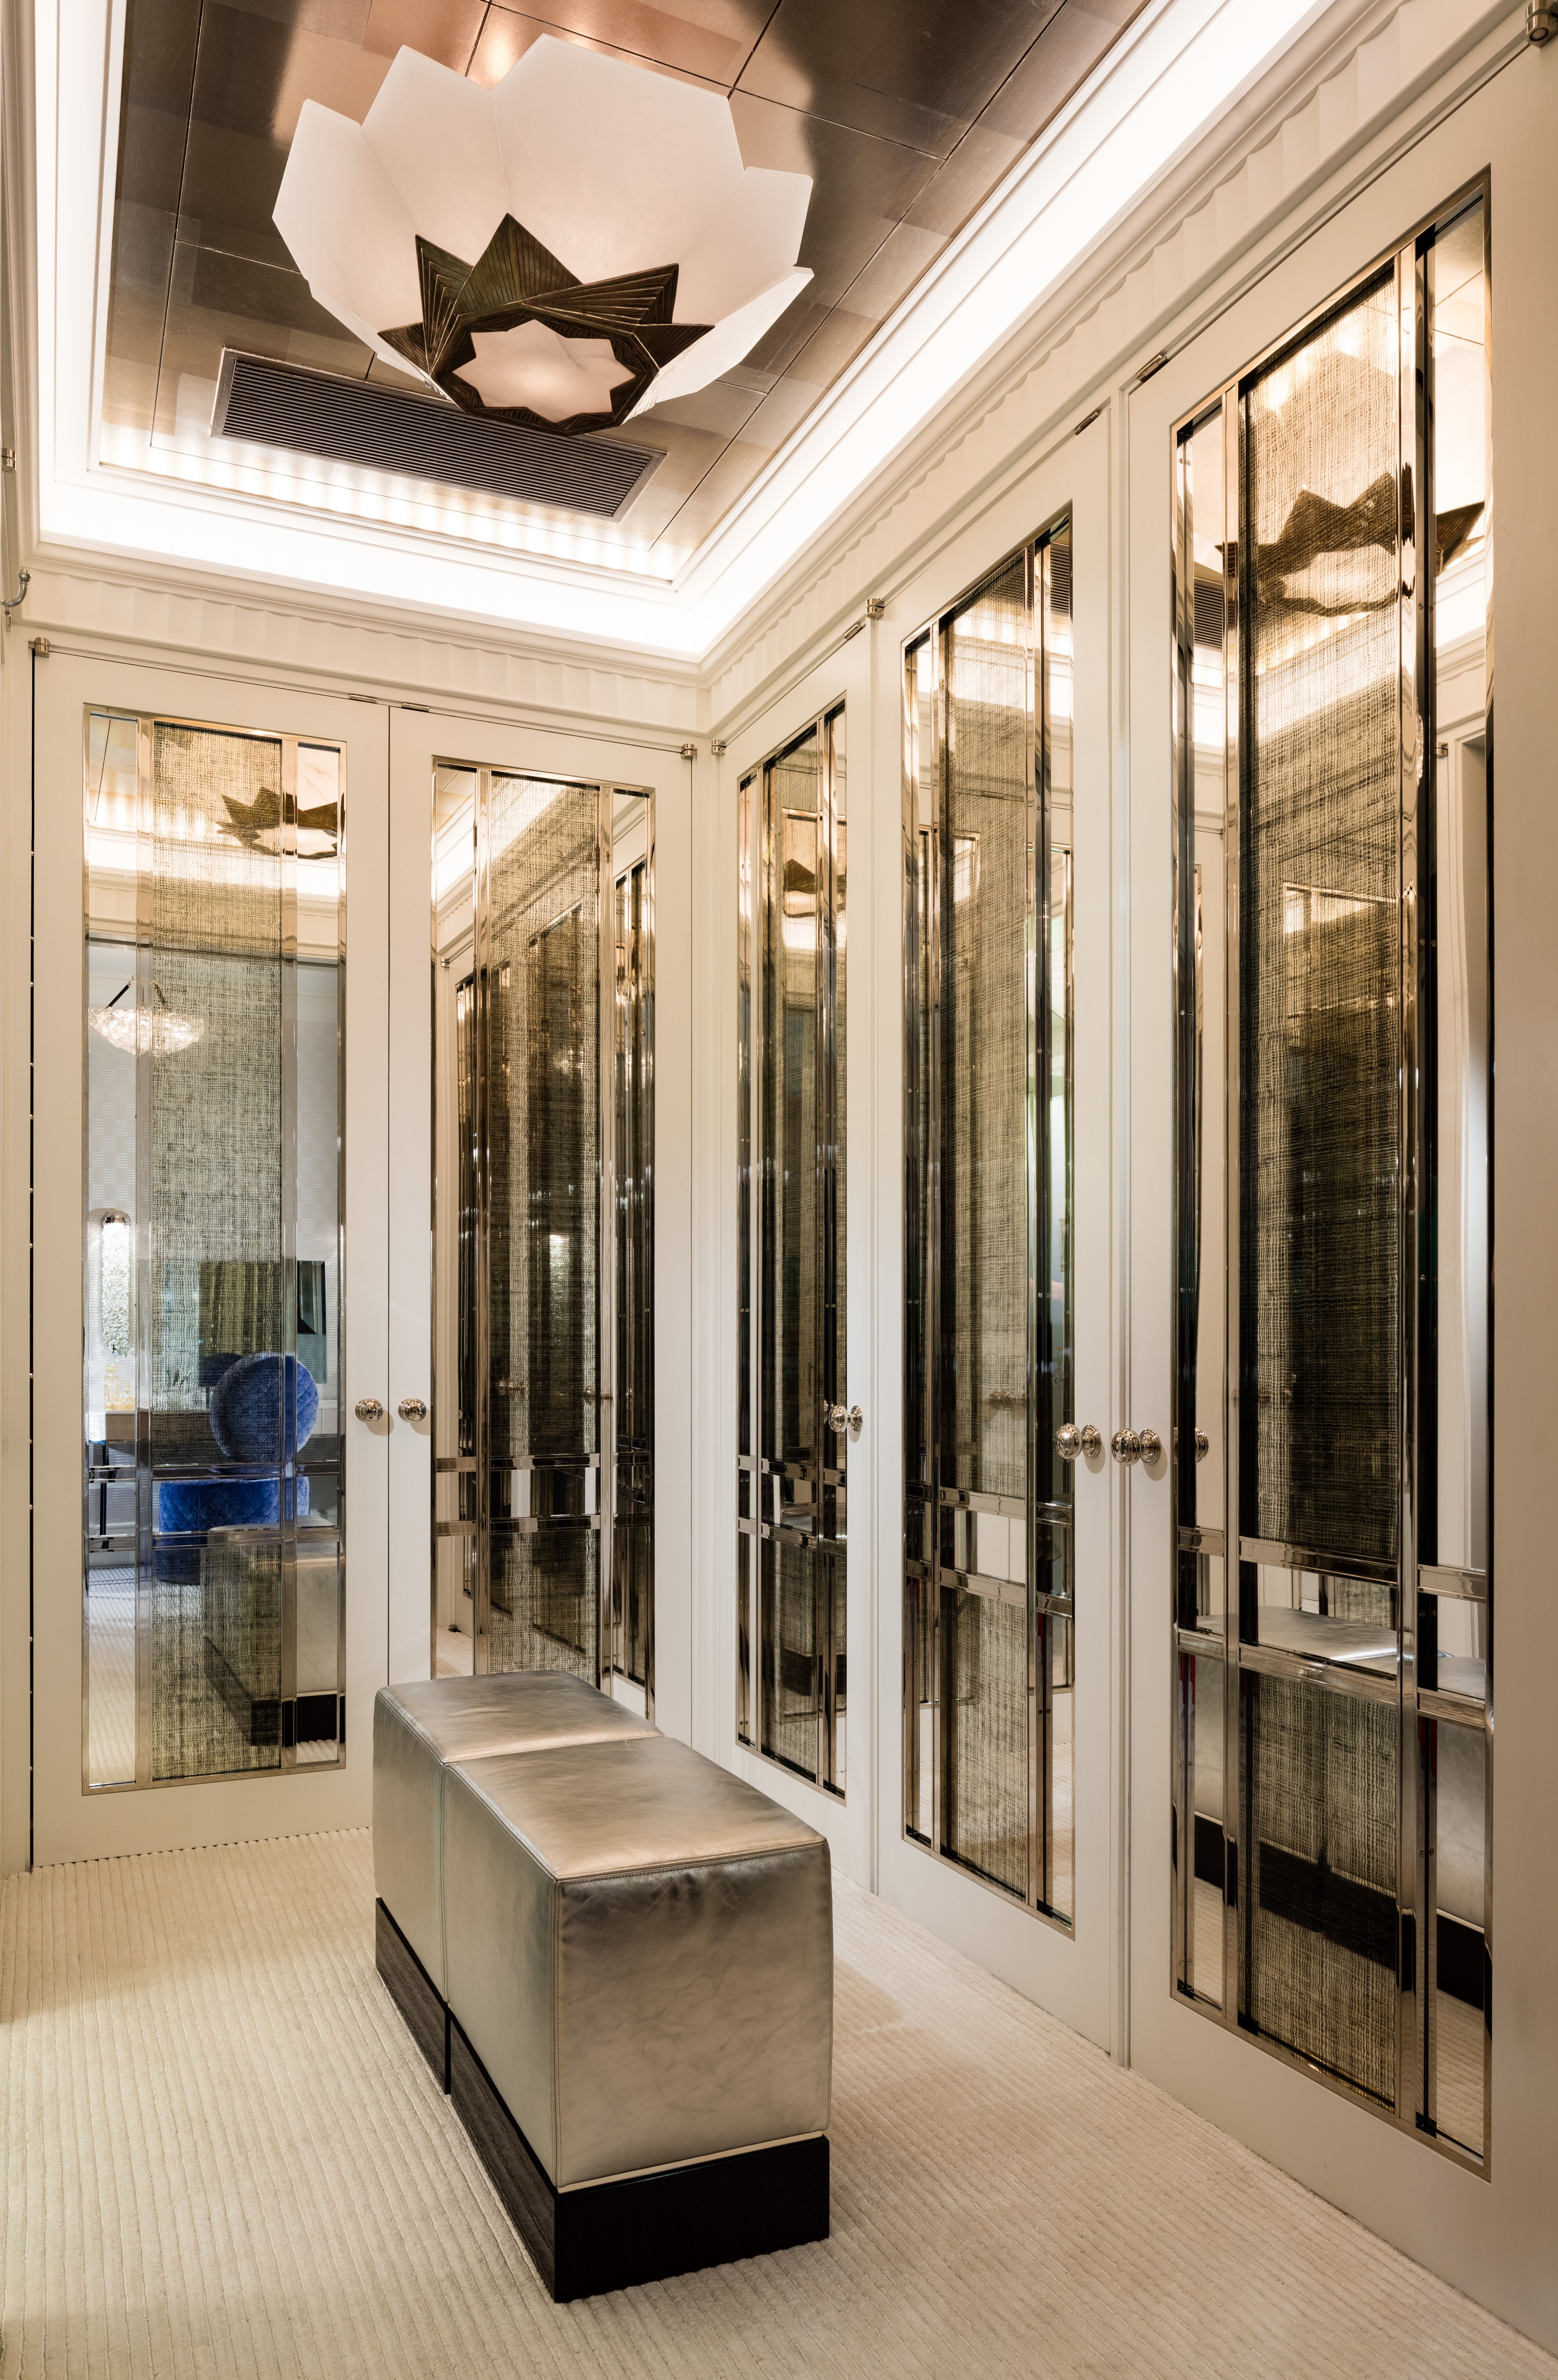 Luxurious Dressing Room Designed For Elegance And Style With